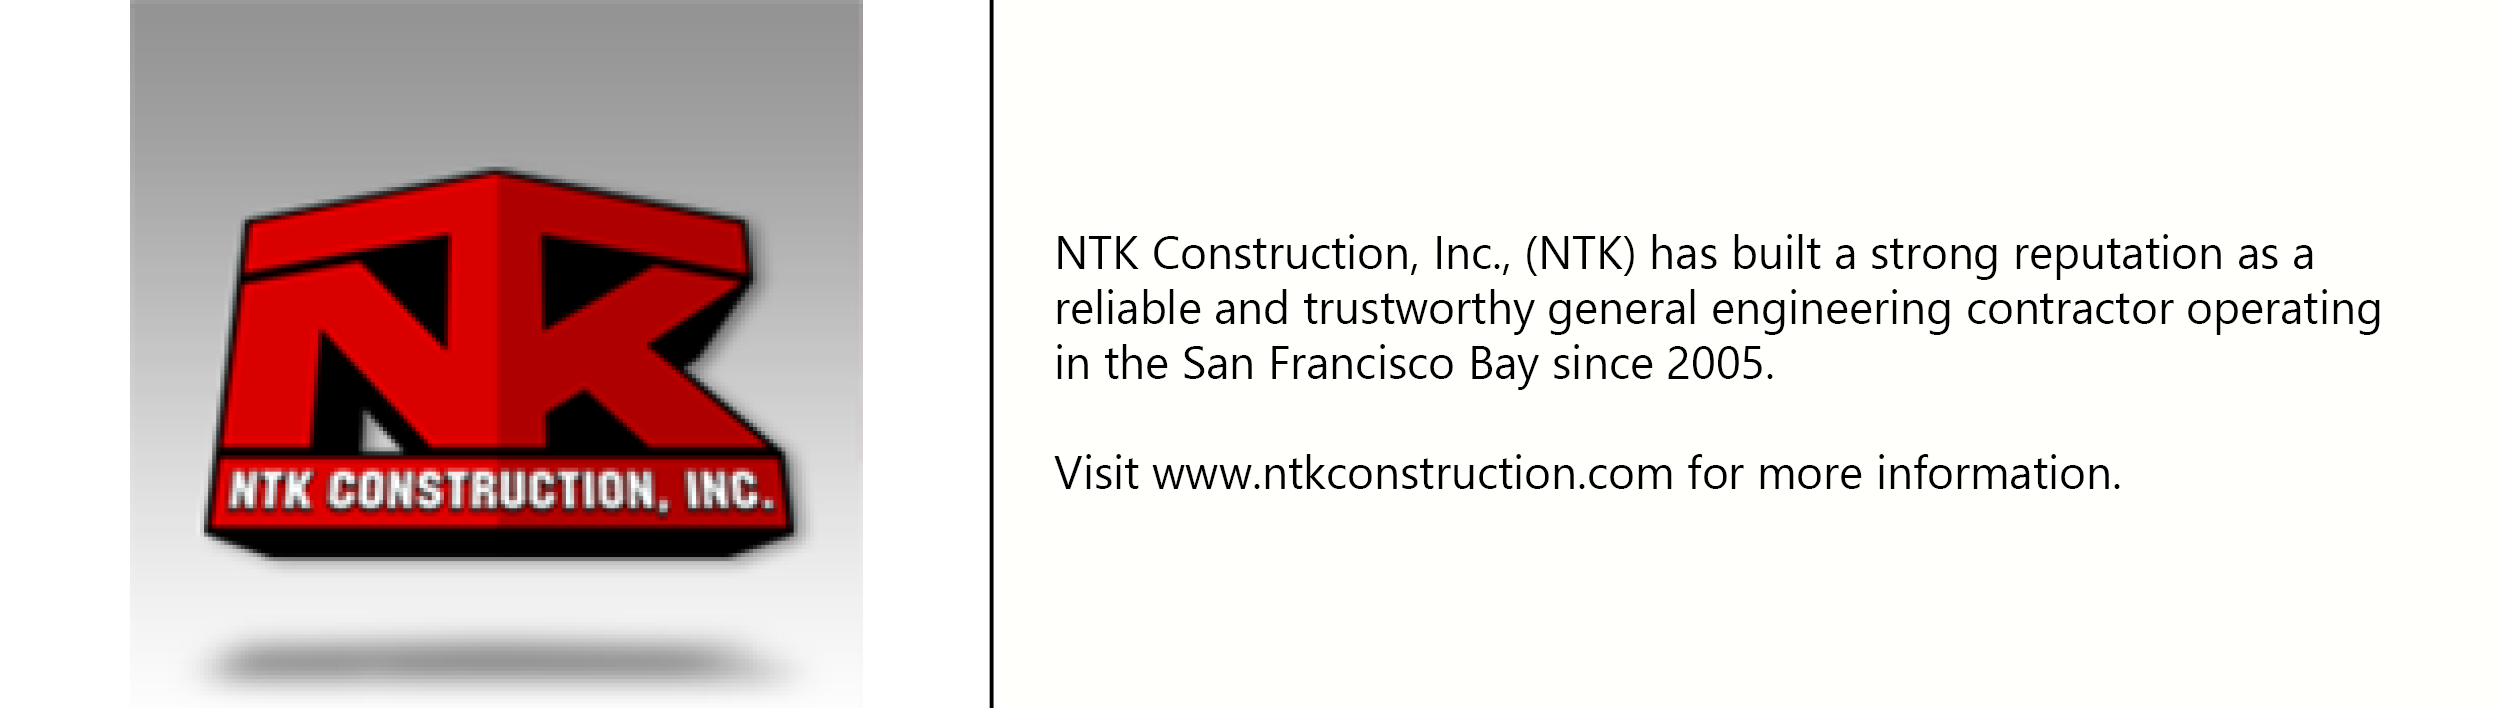 NTK Construction logo with description of company